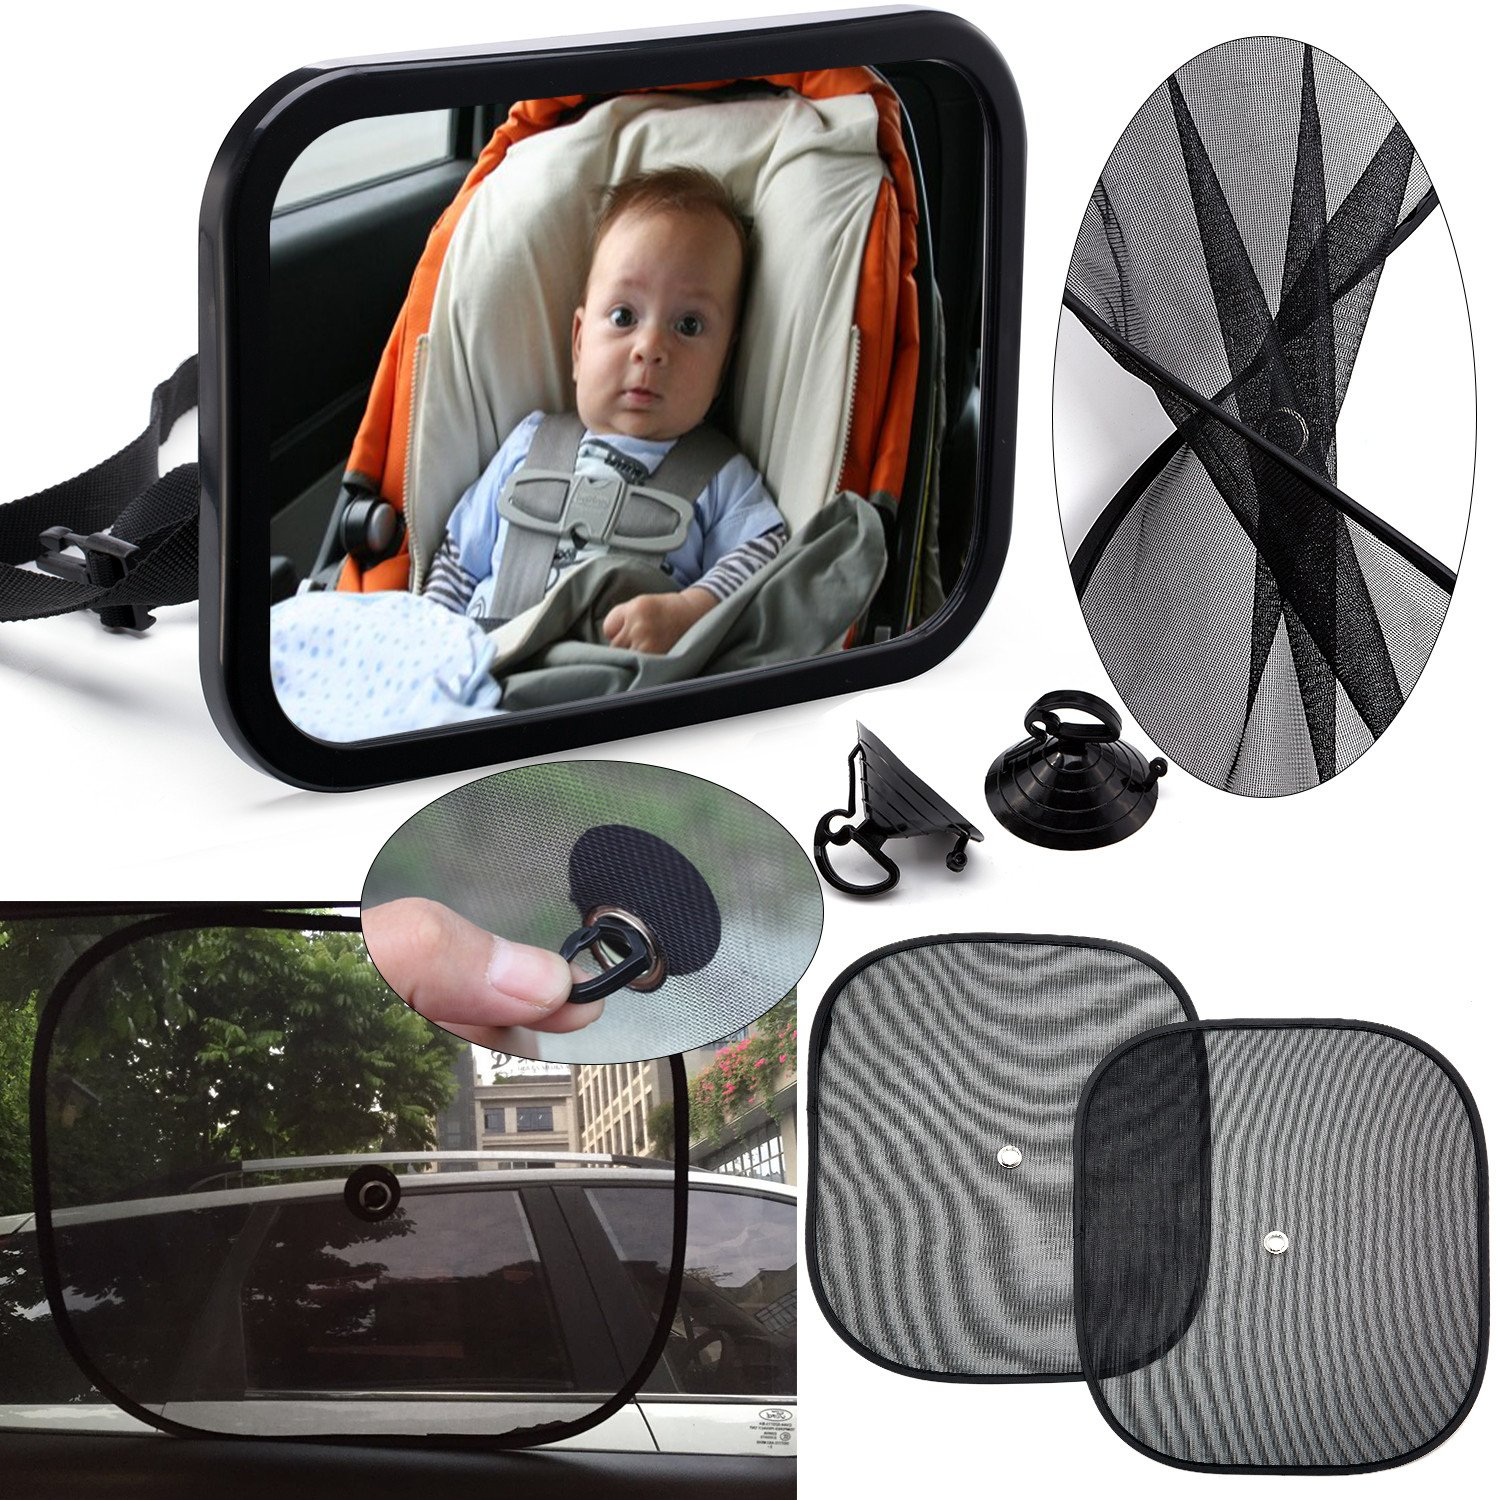 Baby Backseat Mirror for Car [COMBO w/ 2 Universal Window Shades] - View Infant in Rear Facing Car Seat - Newborn Safety With Secure Headrest Double-Strap